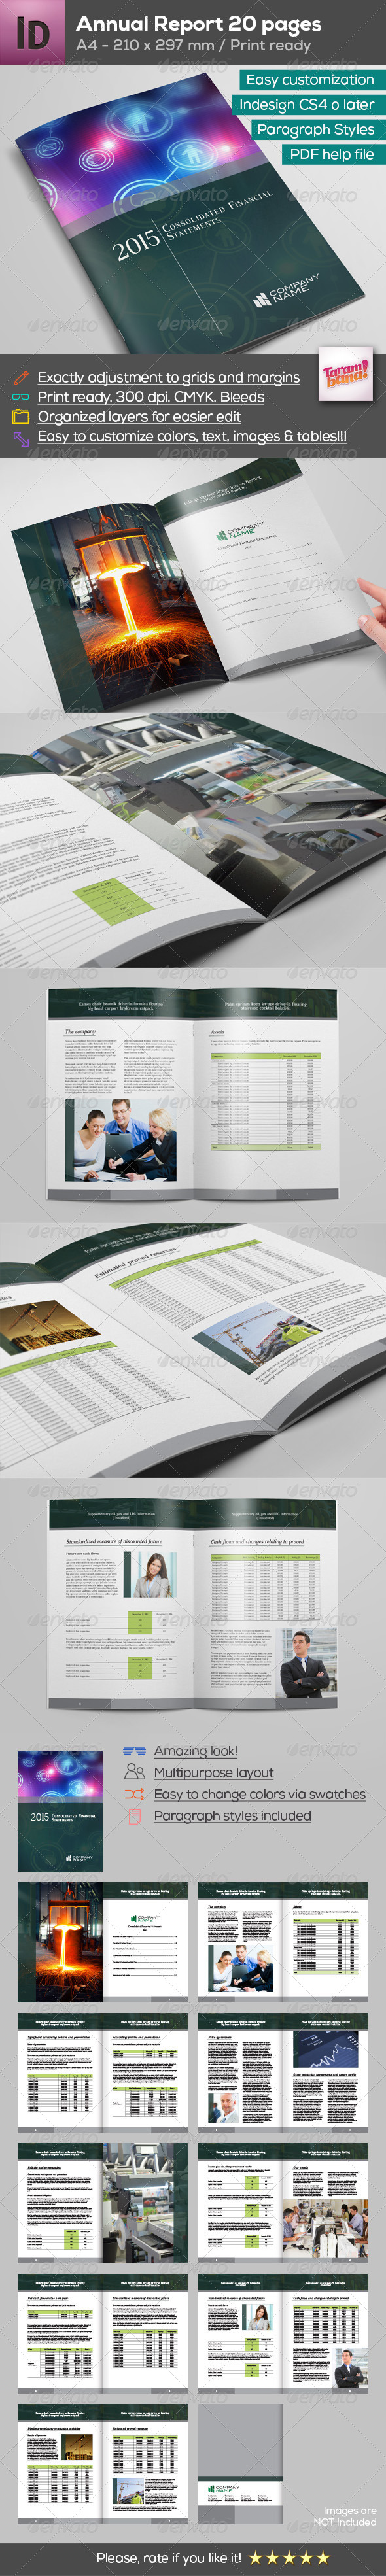 GraphicRiver A4 Annual Report Brochure 20 pages 8390964